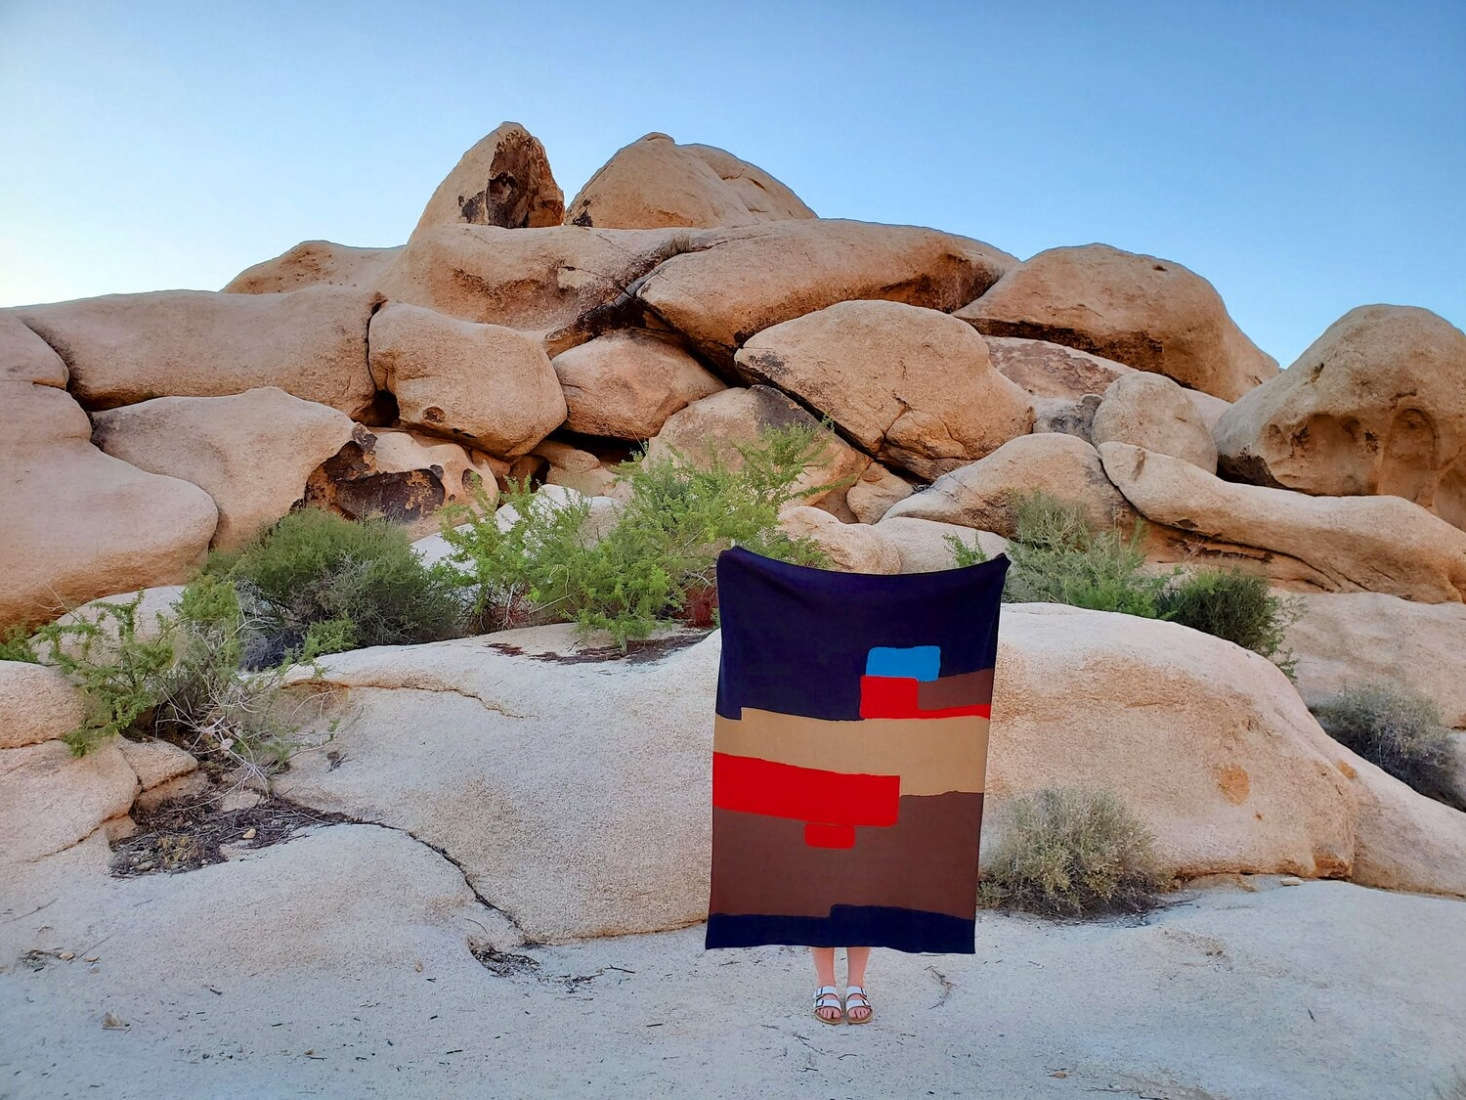 All Roads, a metal and fiber arts collective in the Mojave Desert, makes hand-woven throws from recycled cotton. Both the Agua Fria Blanket (pictured here) and the Desert Sun Blanket (featured at top) are $8 each.